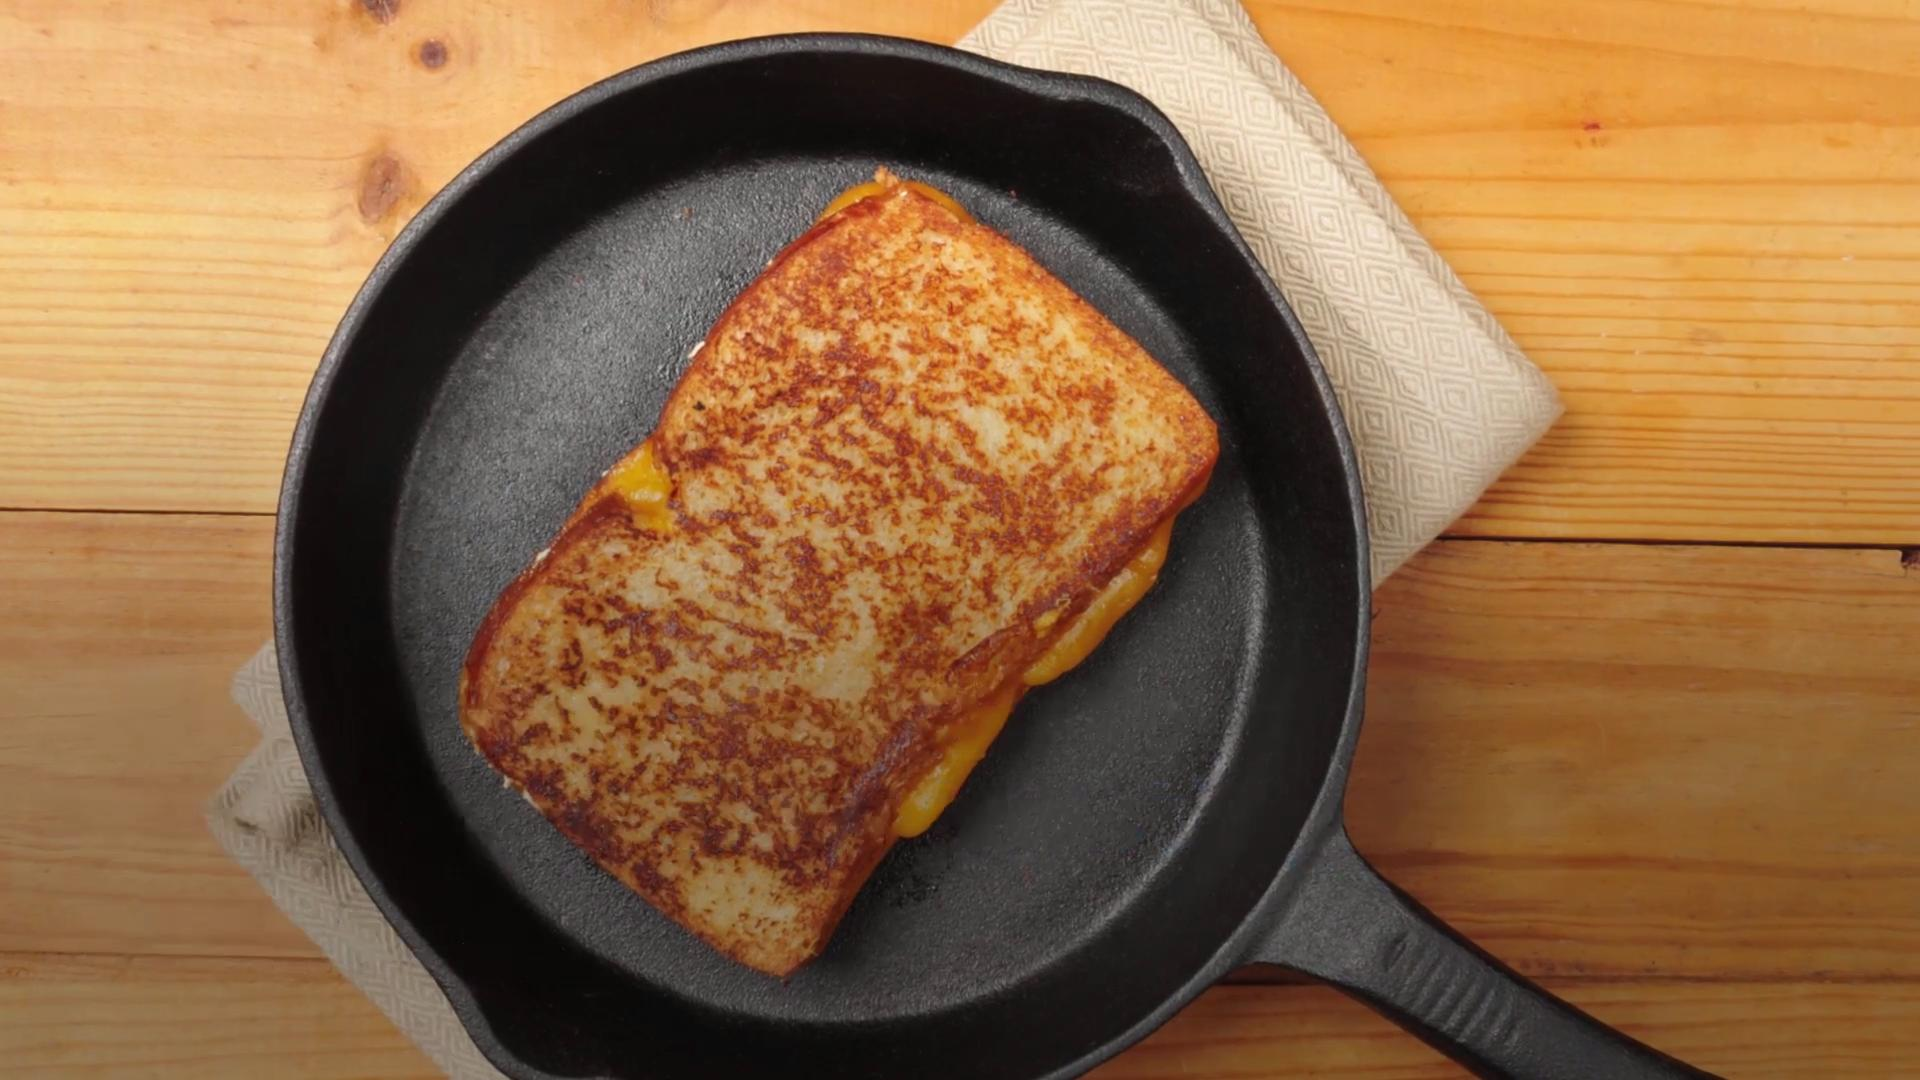 The Brilliant Secret for a Better Grilled Cheese